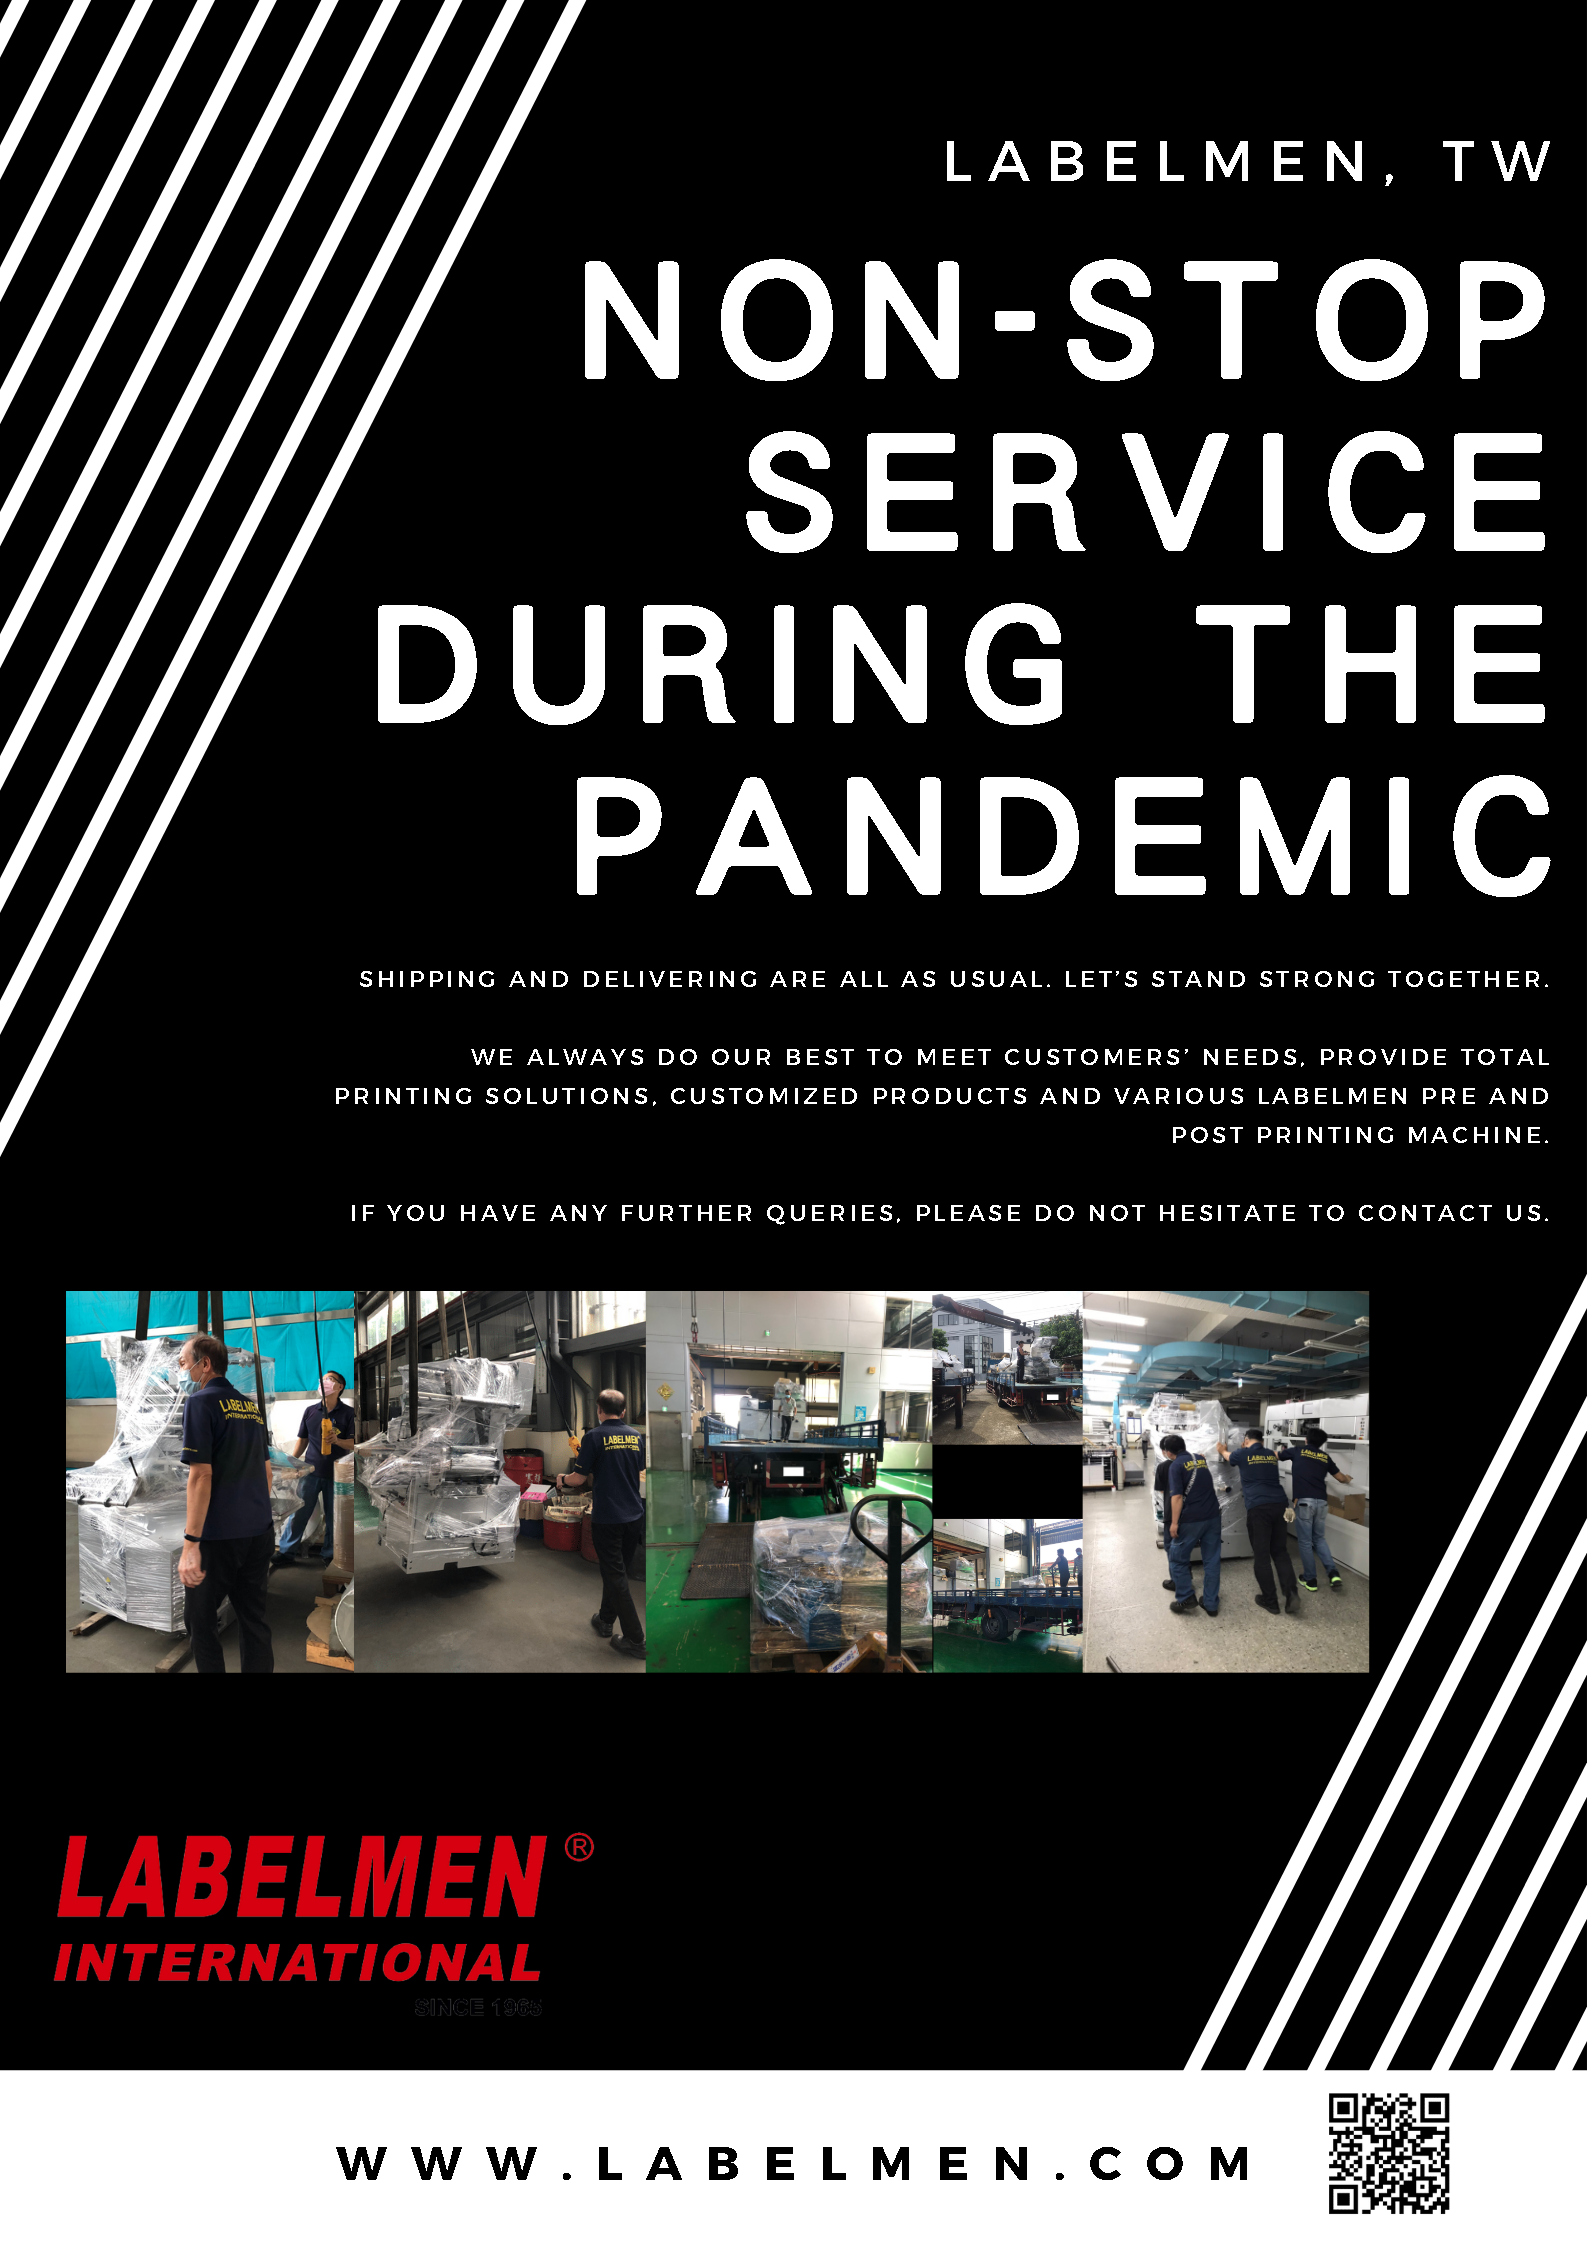 Non-stop service during the pandemic